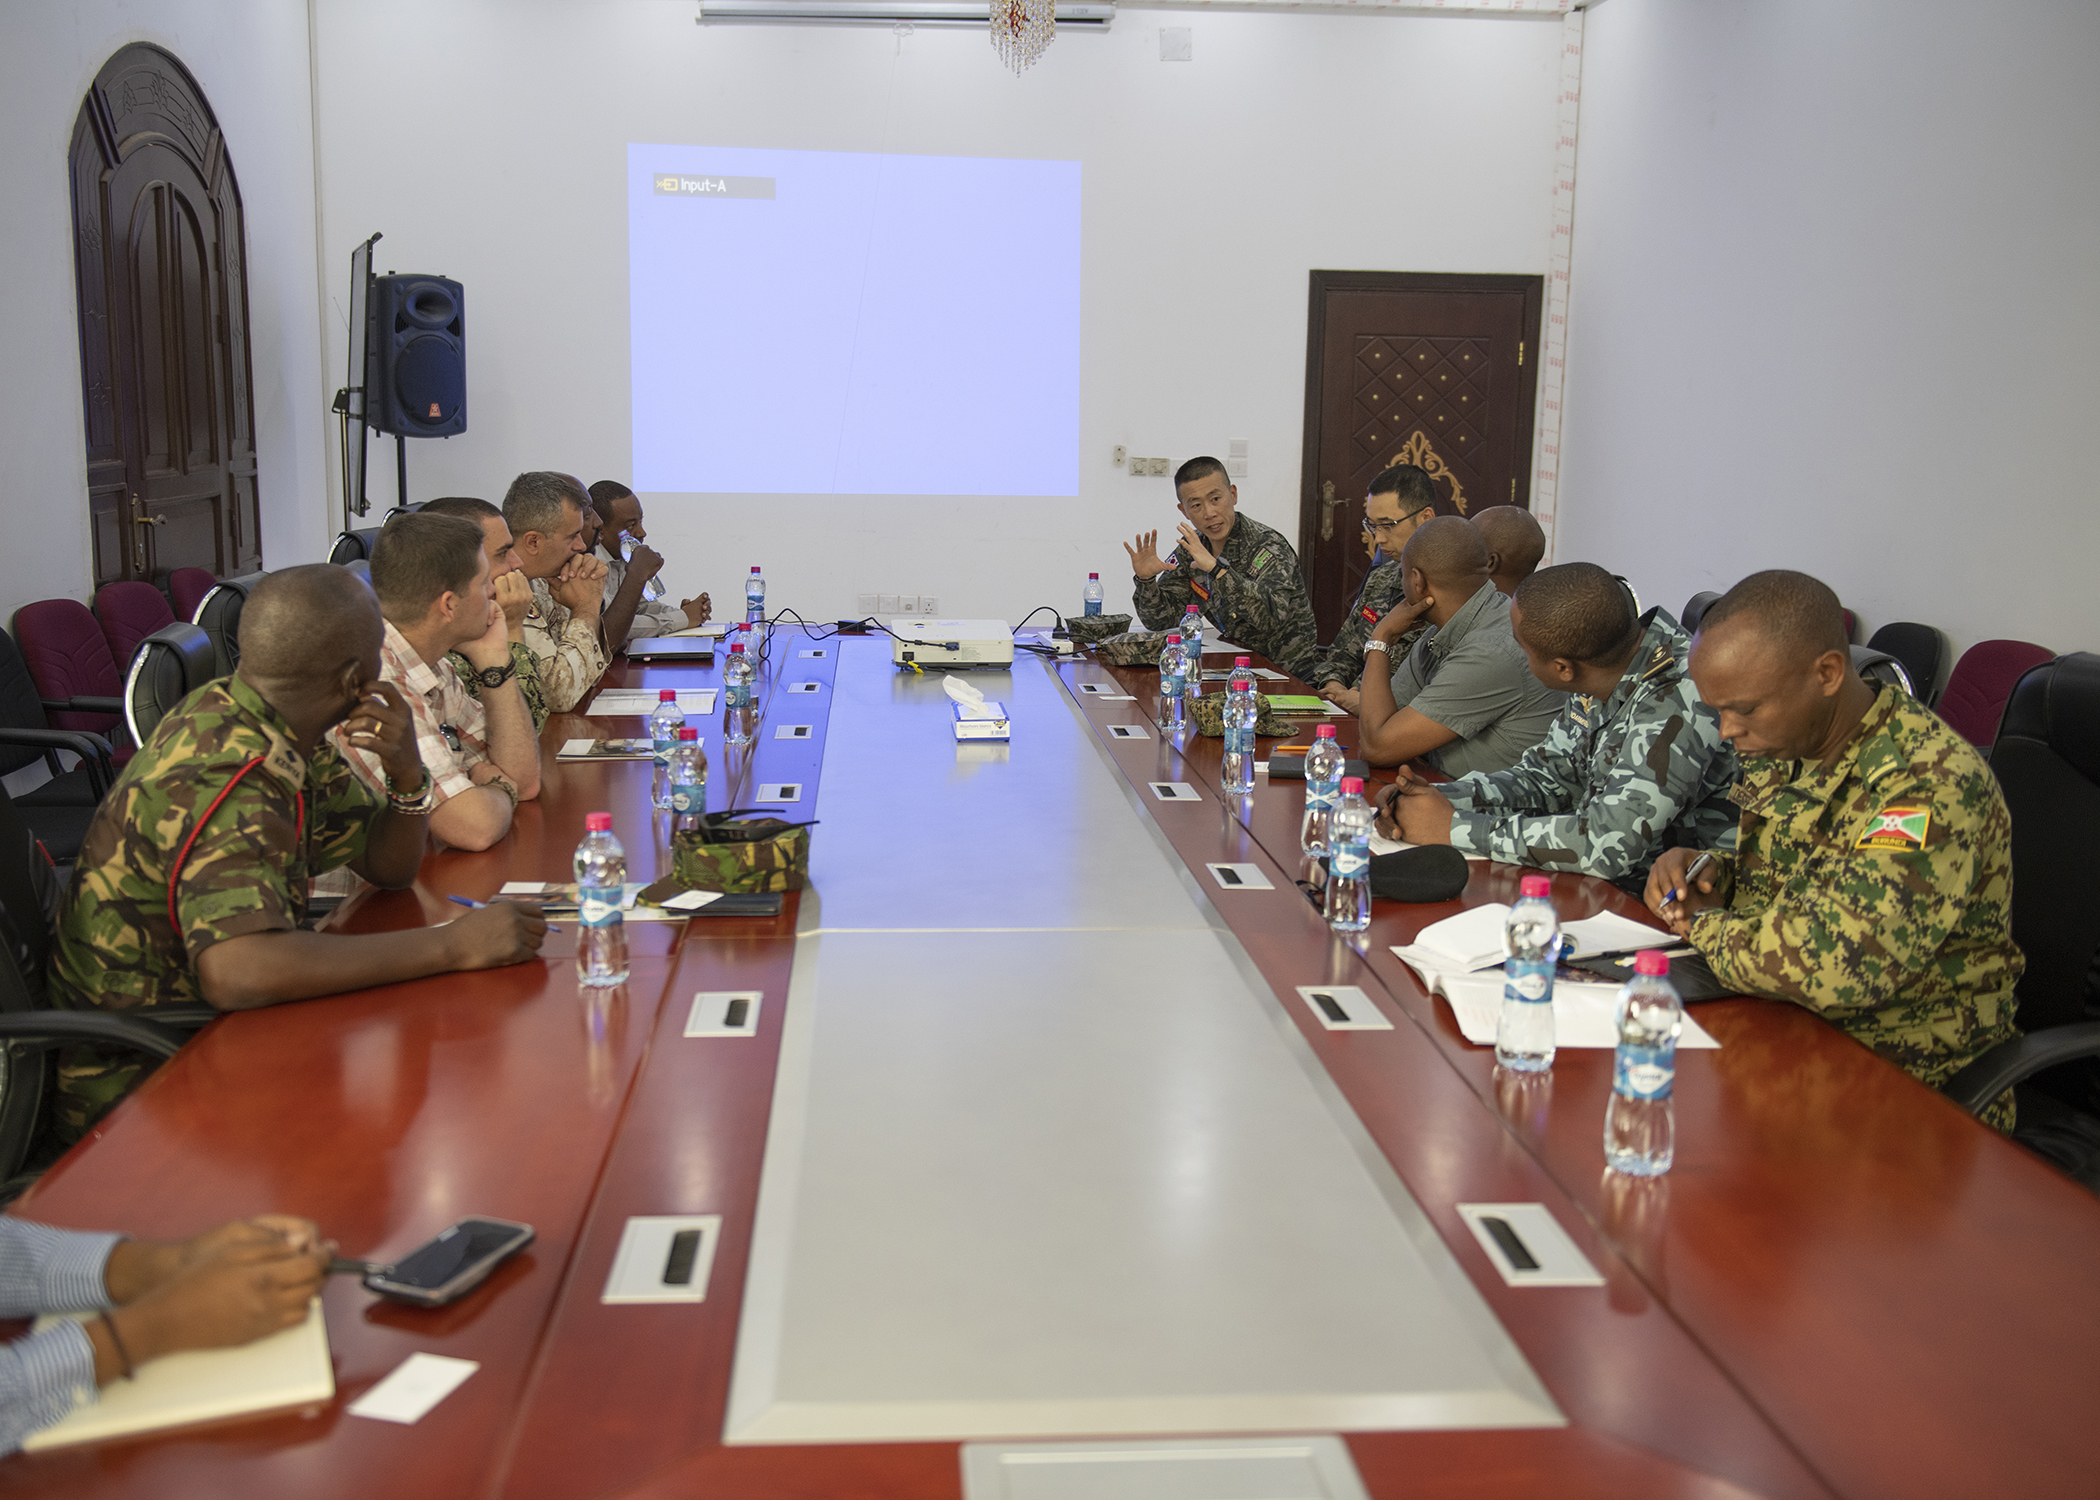 Republic of Korea Marine Maj. Hyunchang Choi, far right end, a foreign liaison officer (FLO) assigned to Combined Joint Task Force-Horn of Africa (CJTF-HOA), starts a discussion during the first-ever formal meeting between FLOs and U.S. military members assigned to CJTF-HOA, and officials from the Intergovernmental Authority on Development in Djibouti, Jan. 16, 2019. The purpose of the meeting was for both parties to familiarize themselves with each other's missions and goals through a short information exchange and set the stance for future meetings. (U.S. Air Force photo by Tech. Sgt. Shawn Nickel)